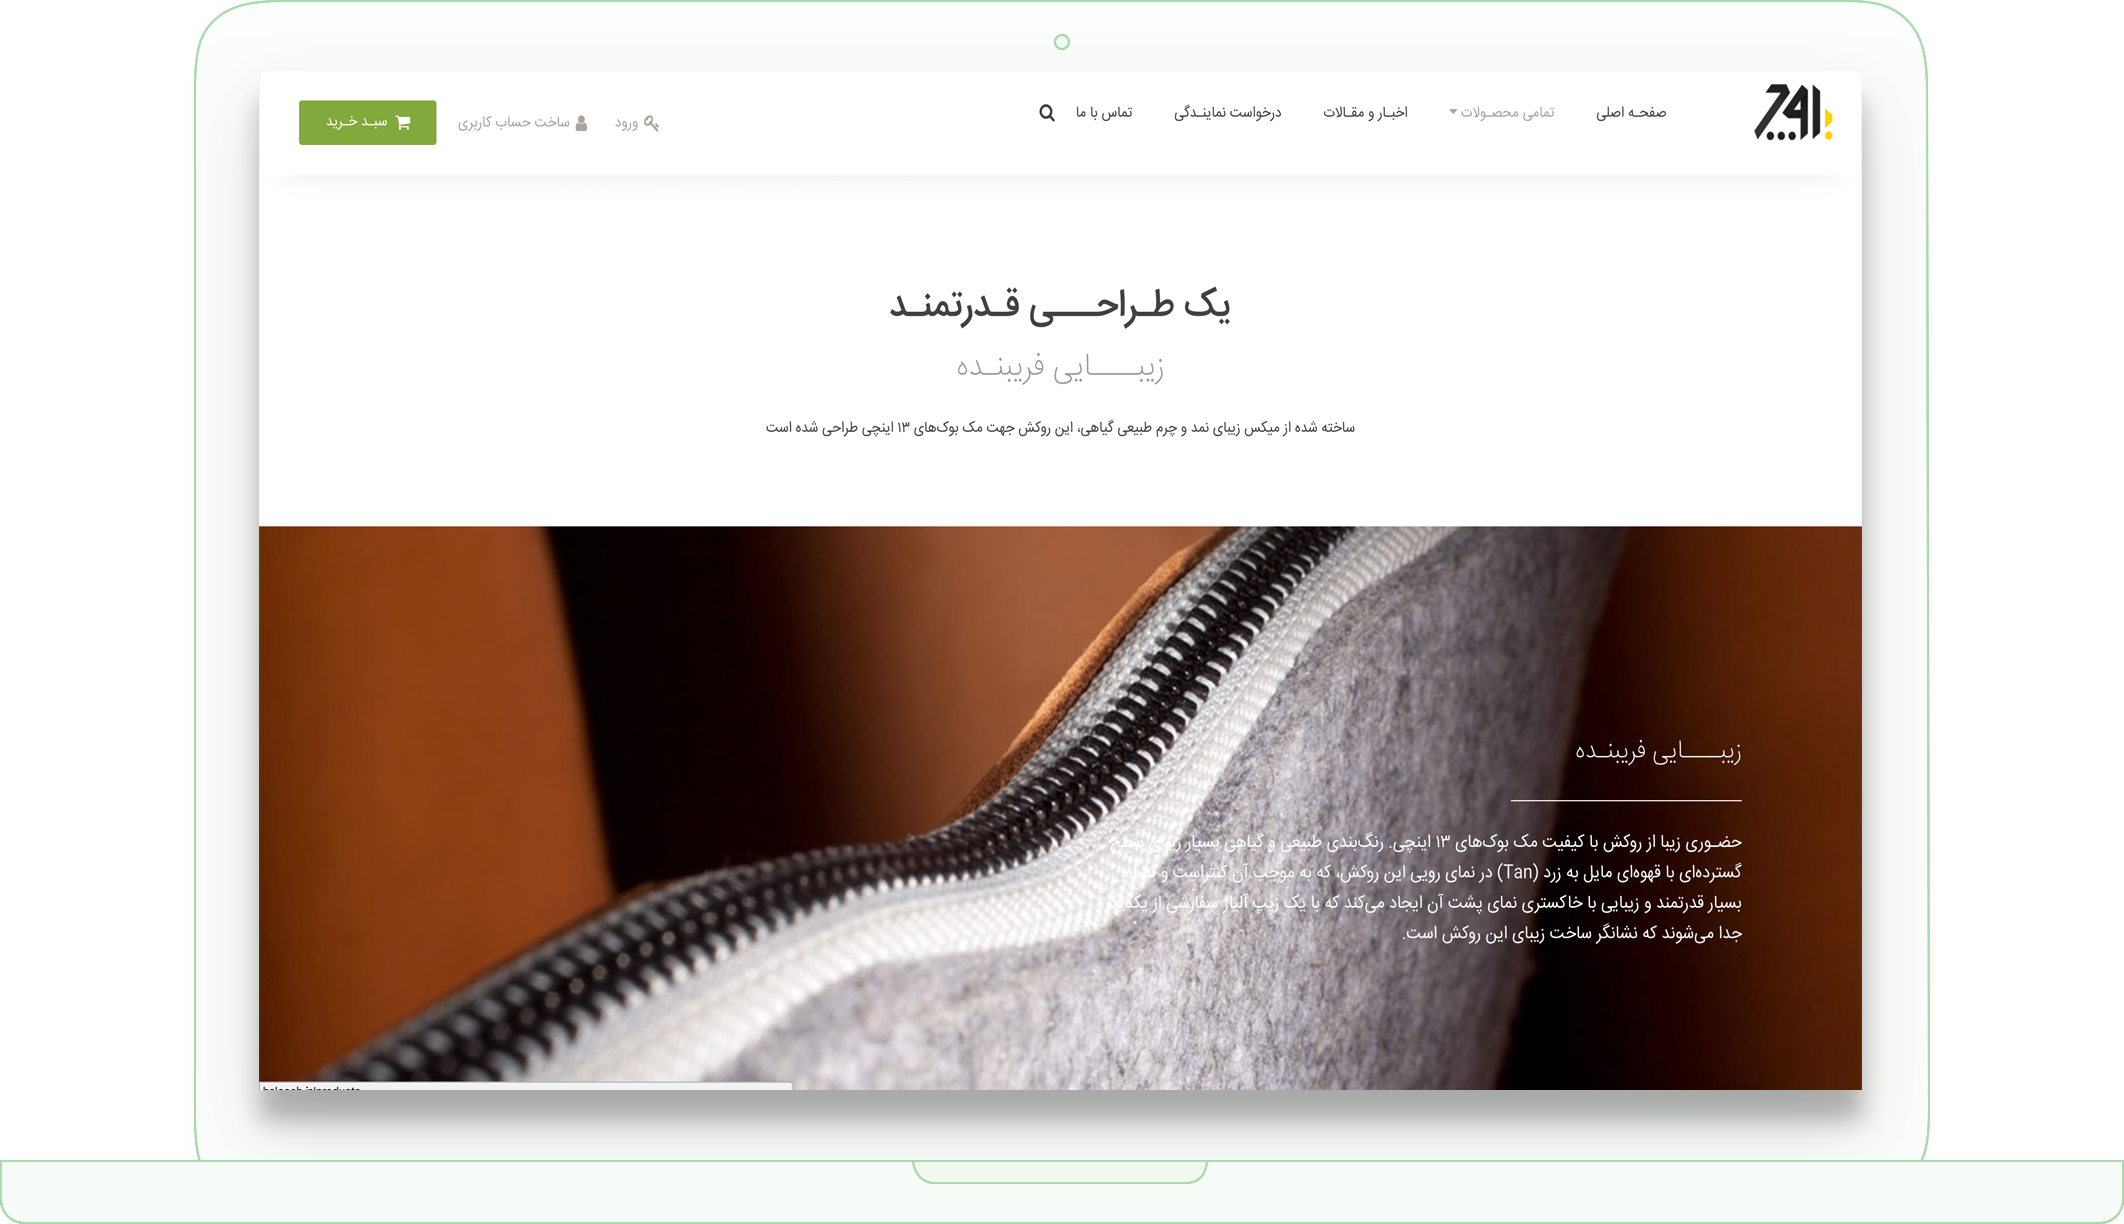 Balooch.ir Website Designed by Milaniz